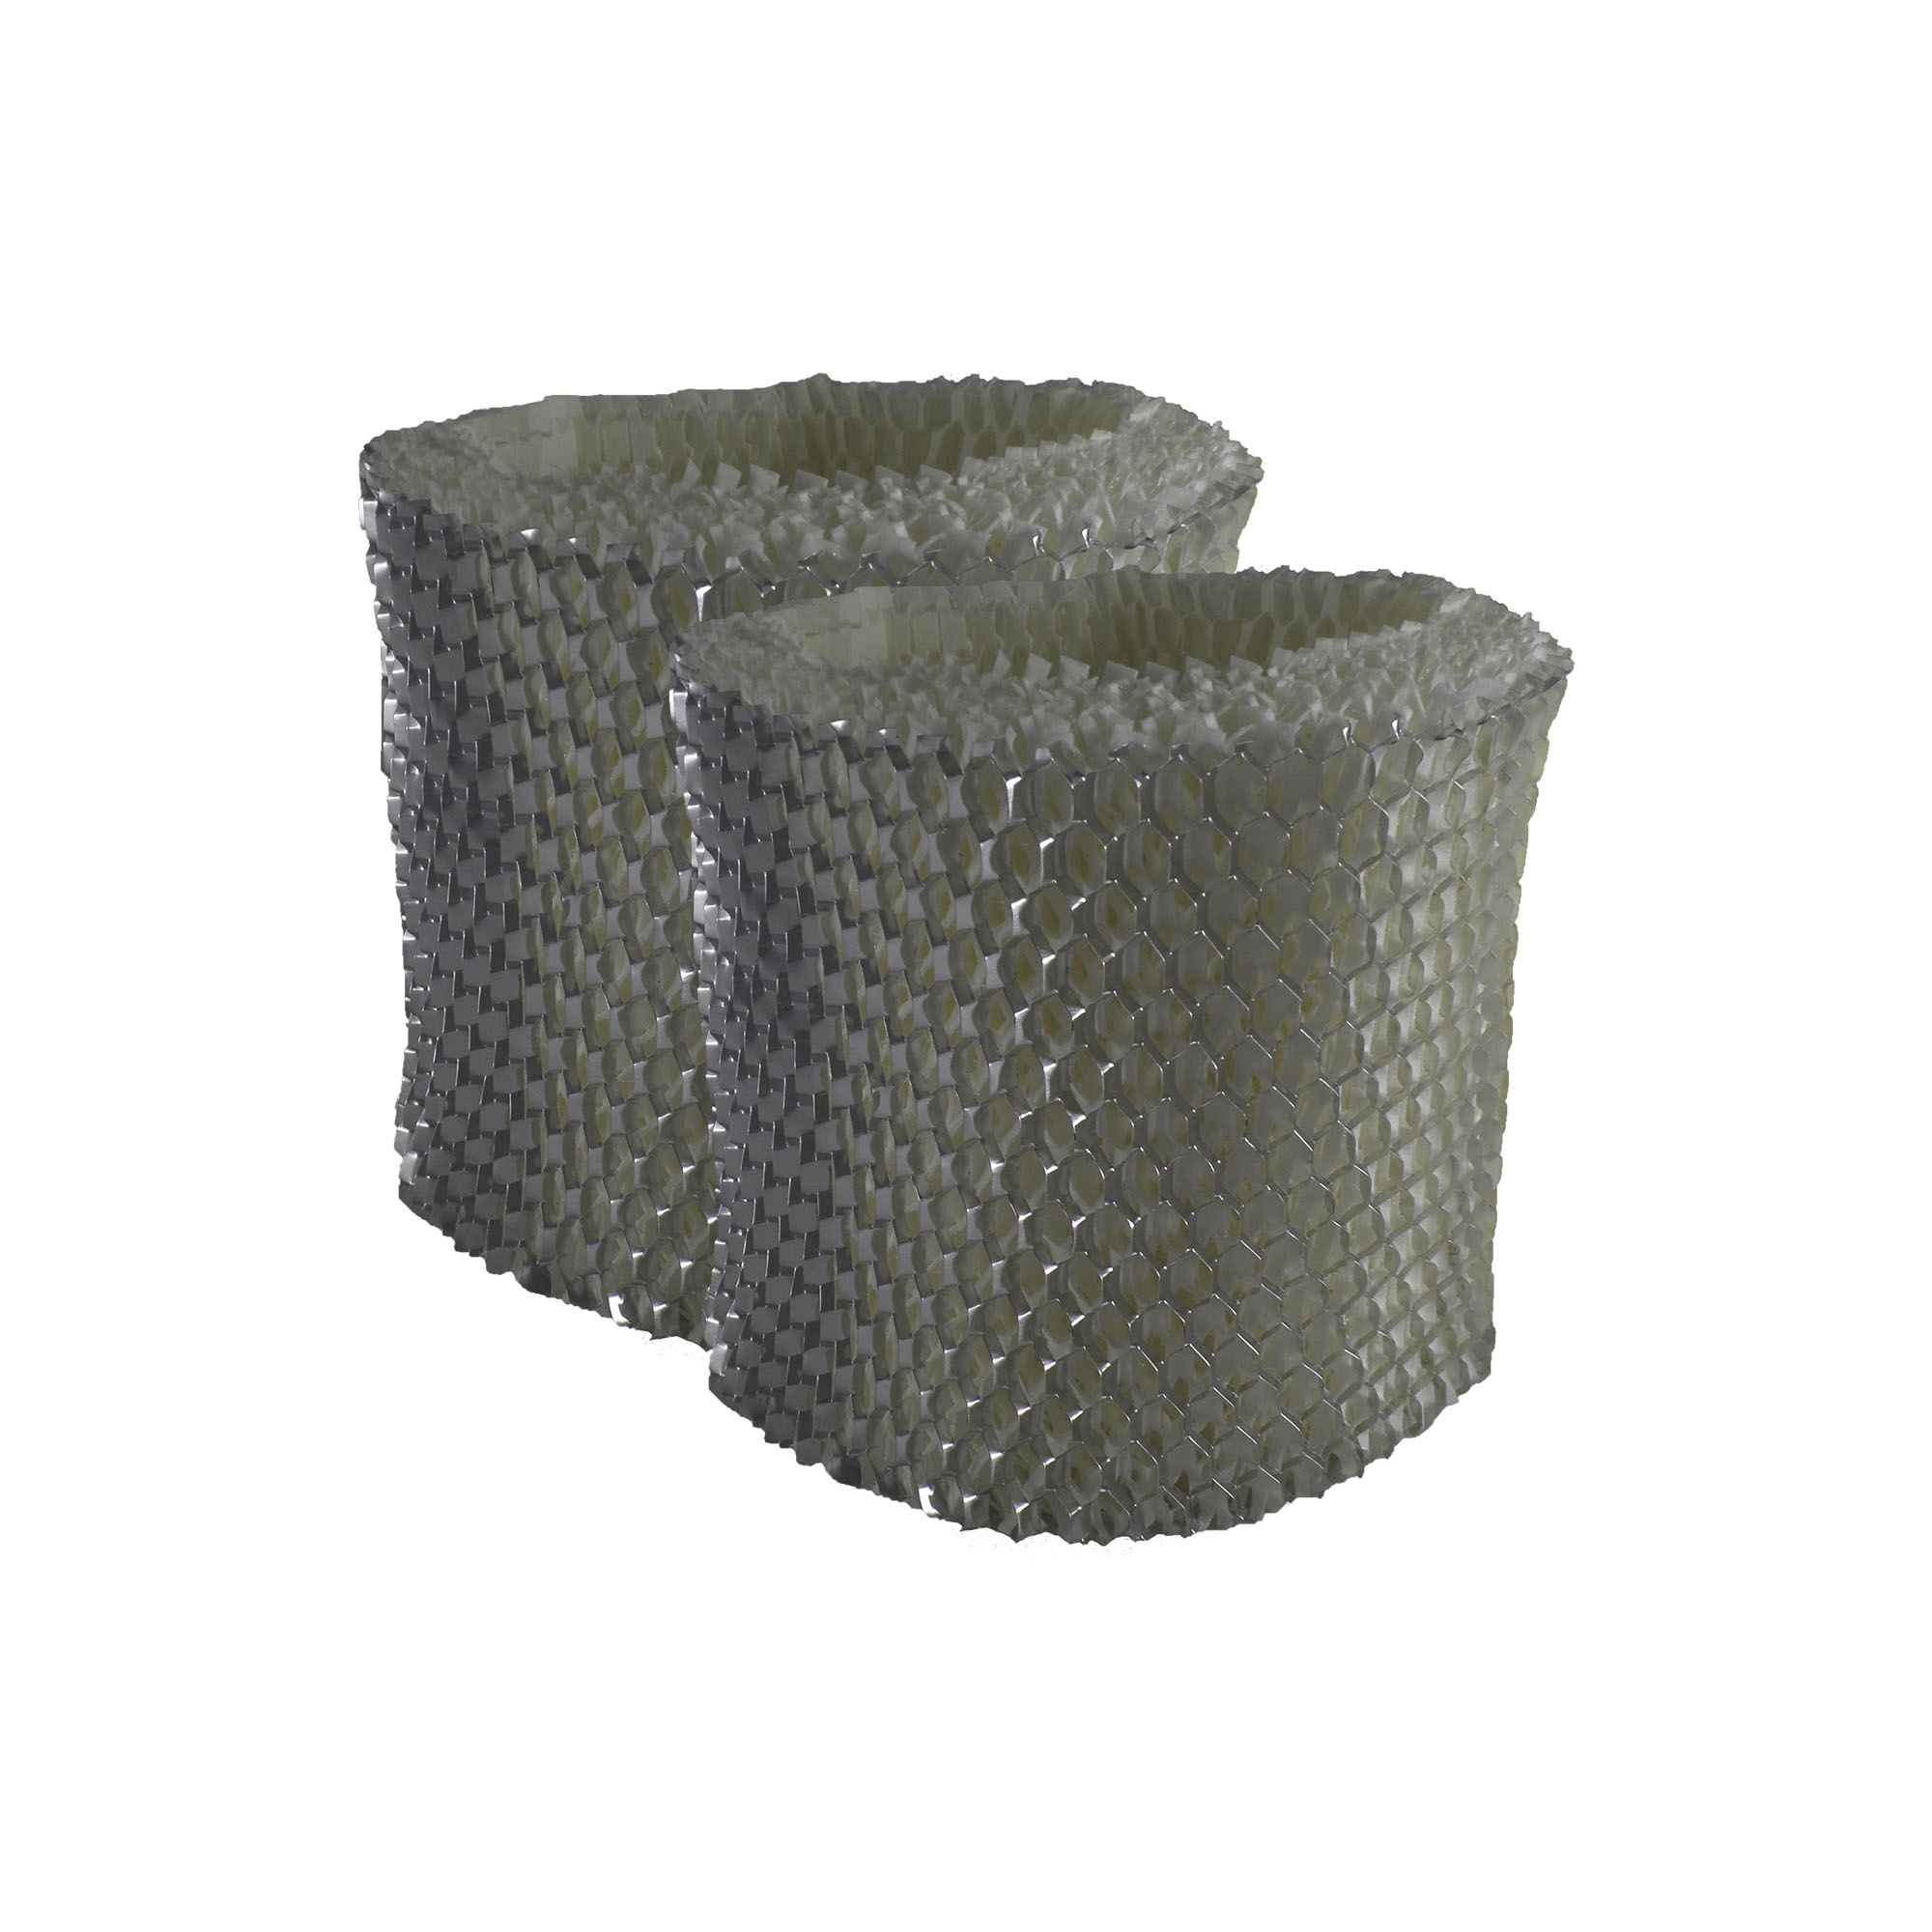 2 PACK Honeywell HCM890, HCM890B, HCM890C, HCM-890-20 Humidifier Filter Replacement ...